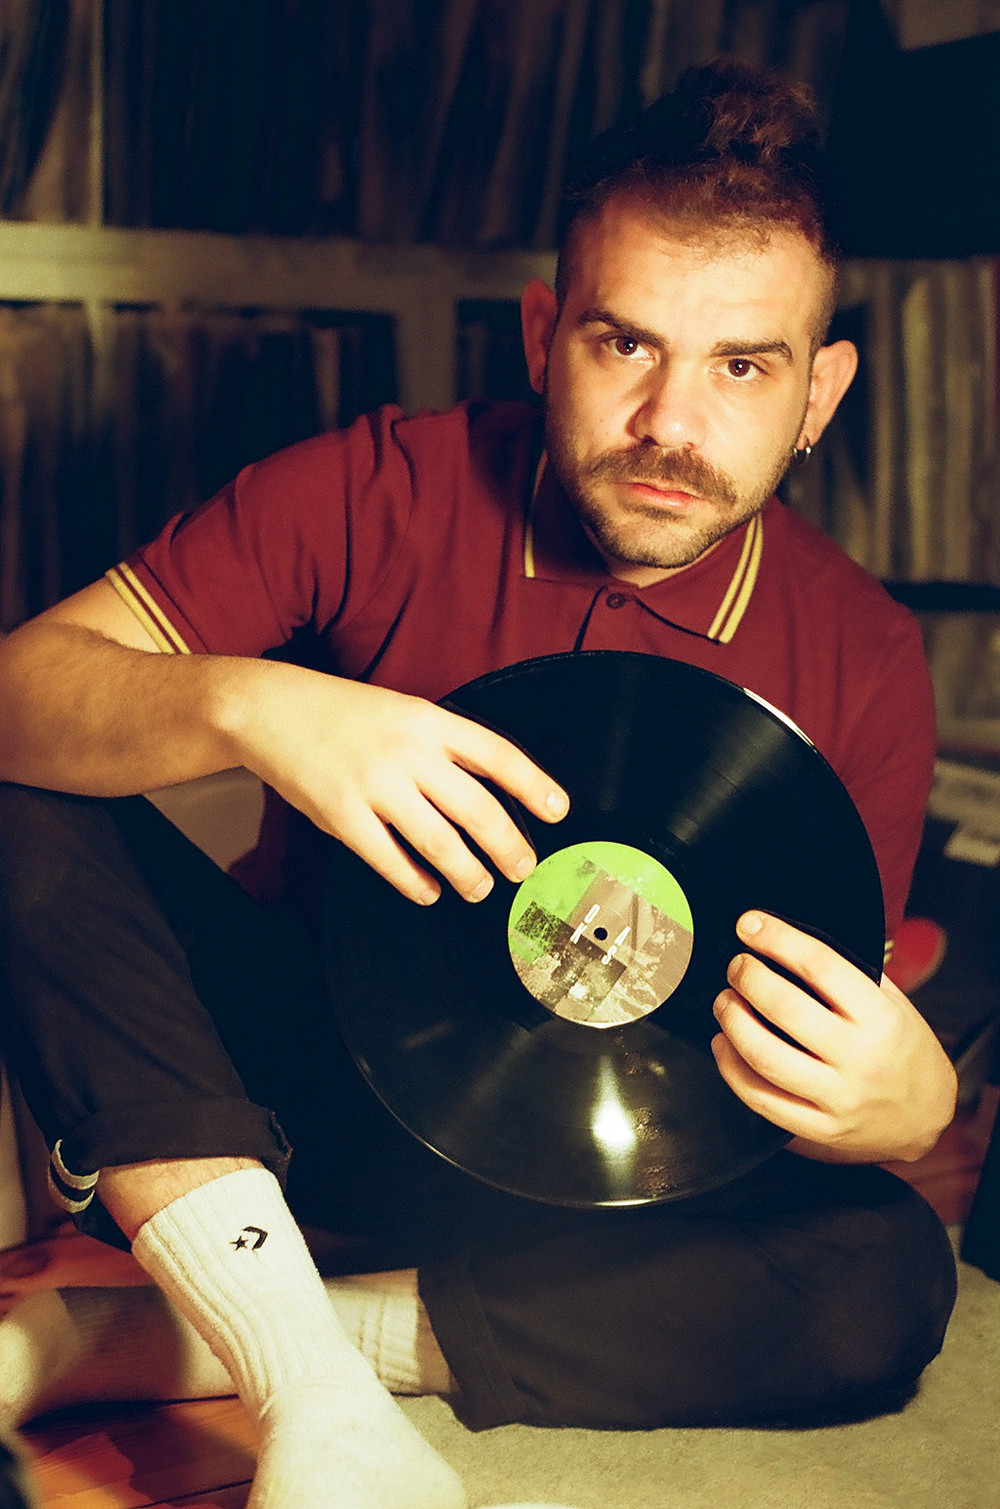 Hector Oaks playing vinyls for Playful Magazine Berlin